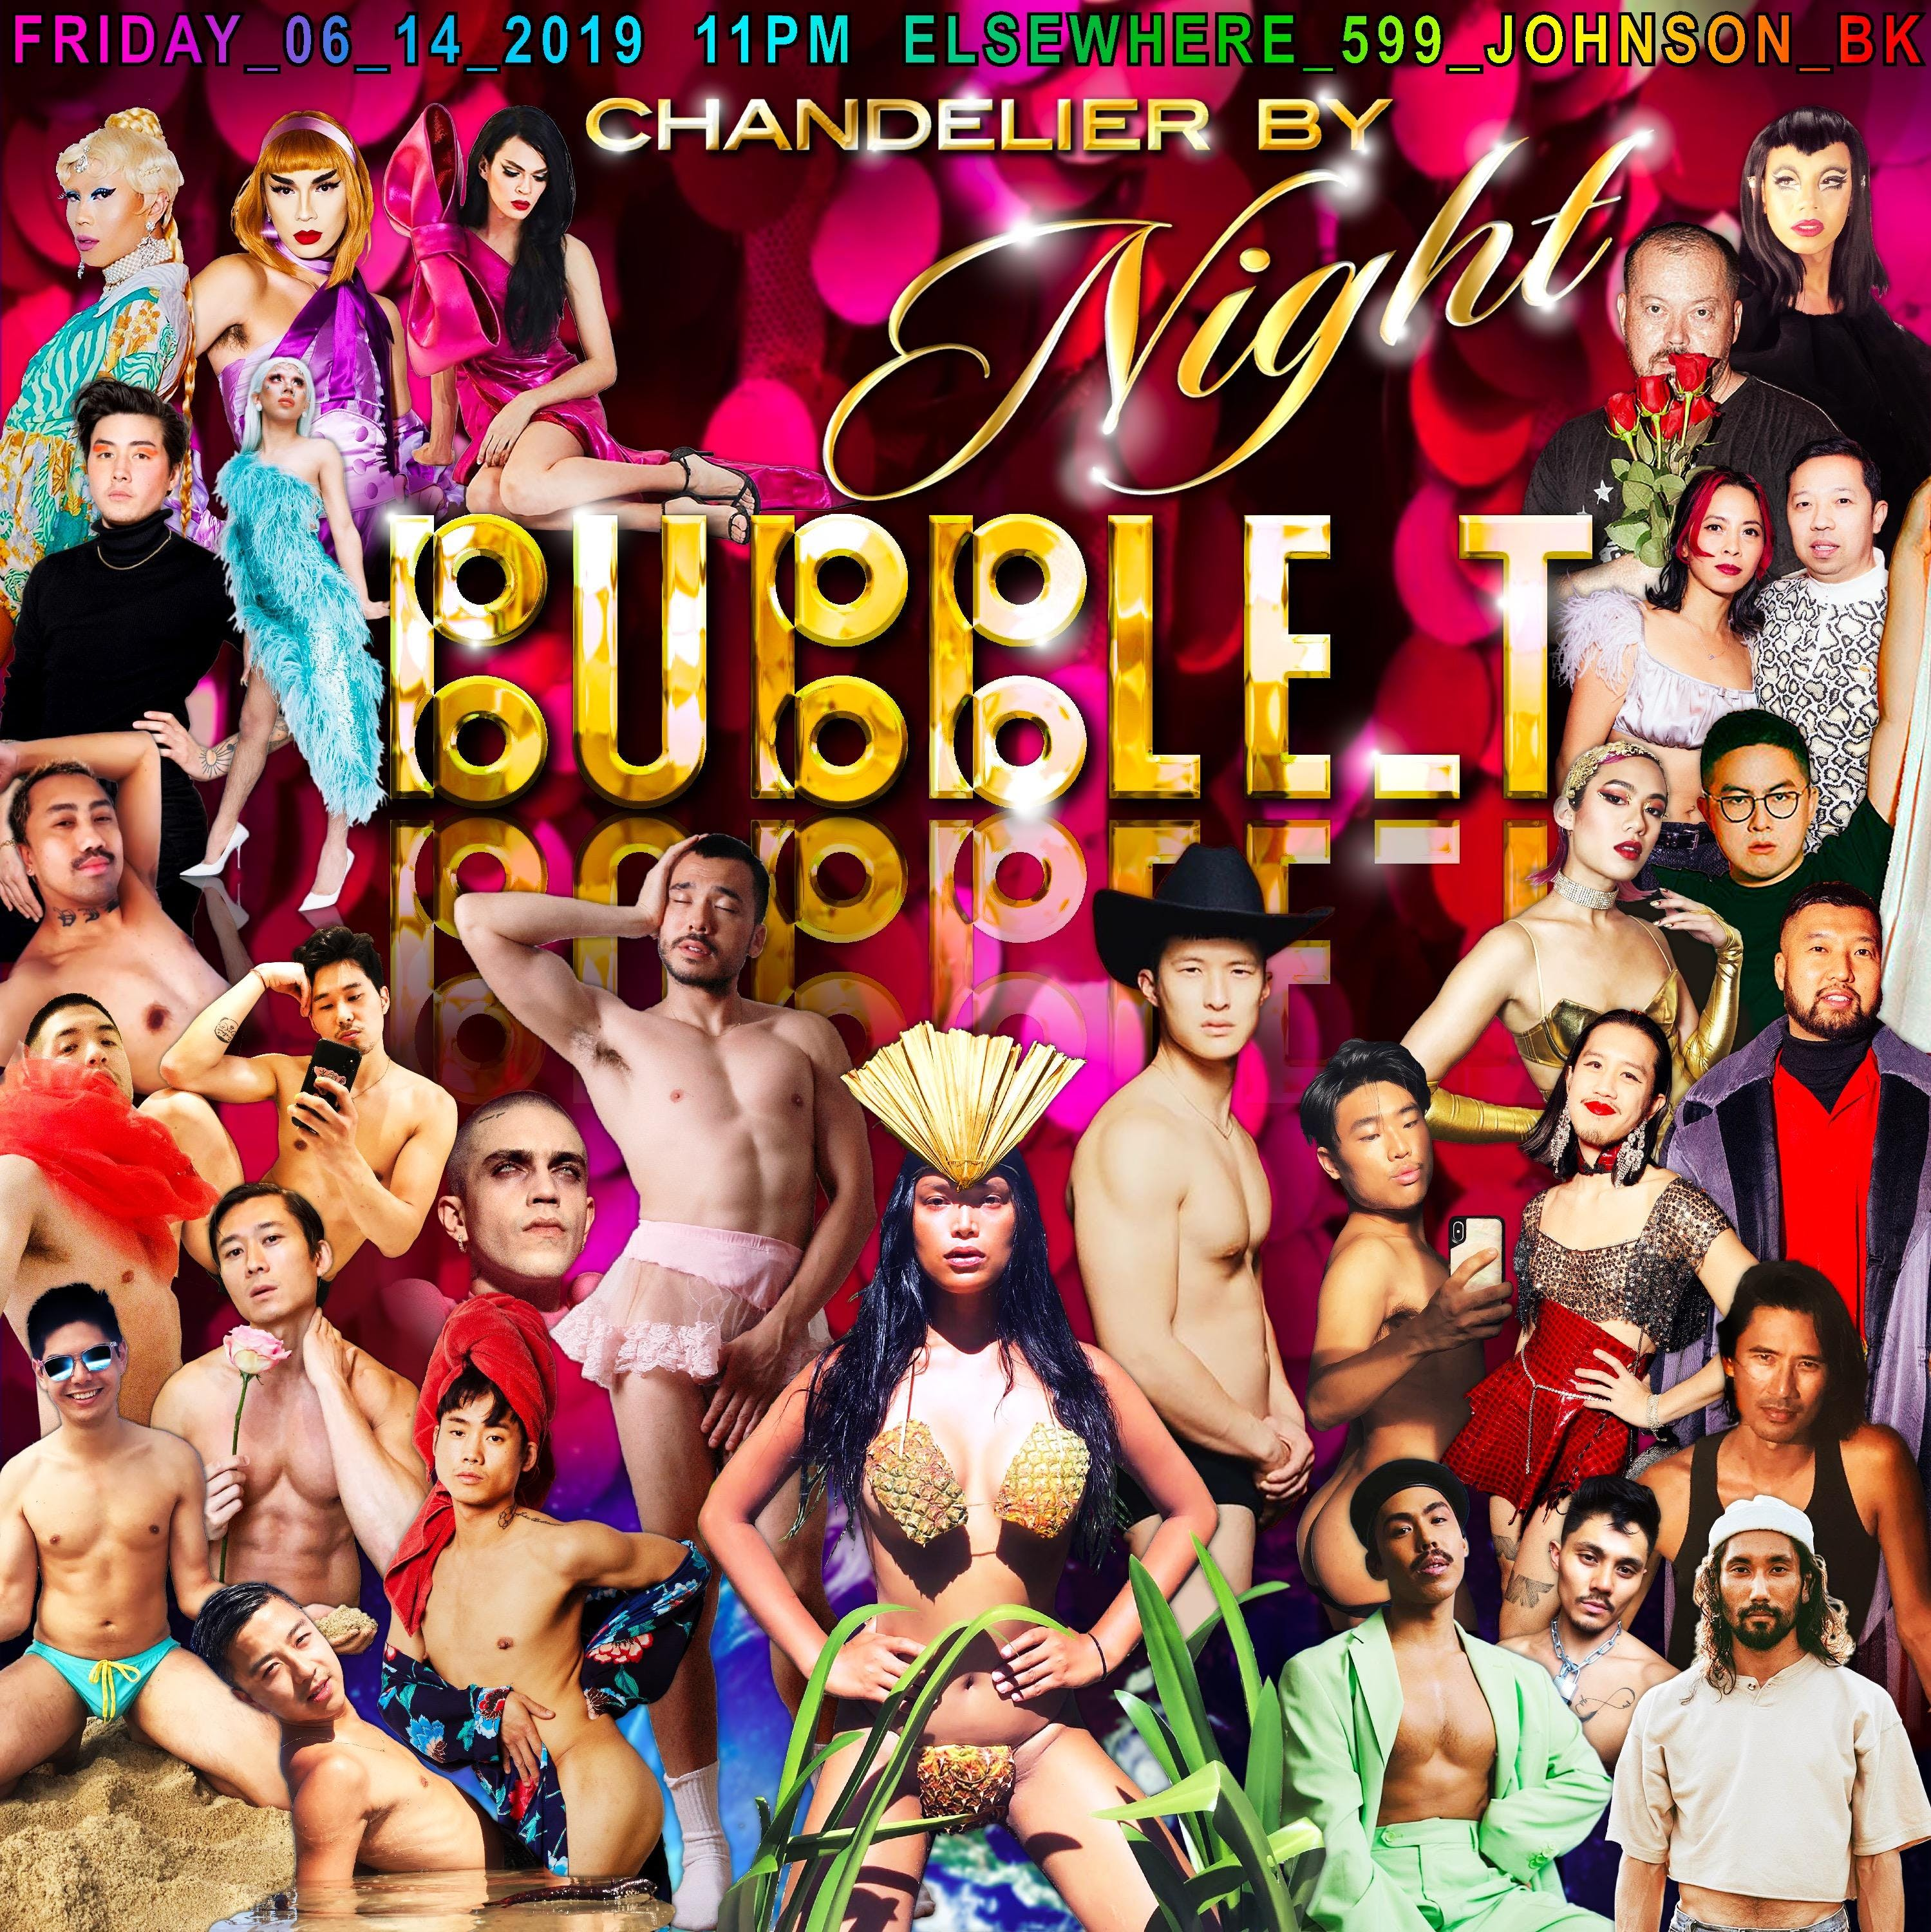 BUBBLE_T CHANDELIER_BY_NIGHT w/ Joey LaBeija, Howin Wong, Tito Vida, Stevie Huynh, Bichon & More